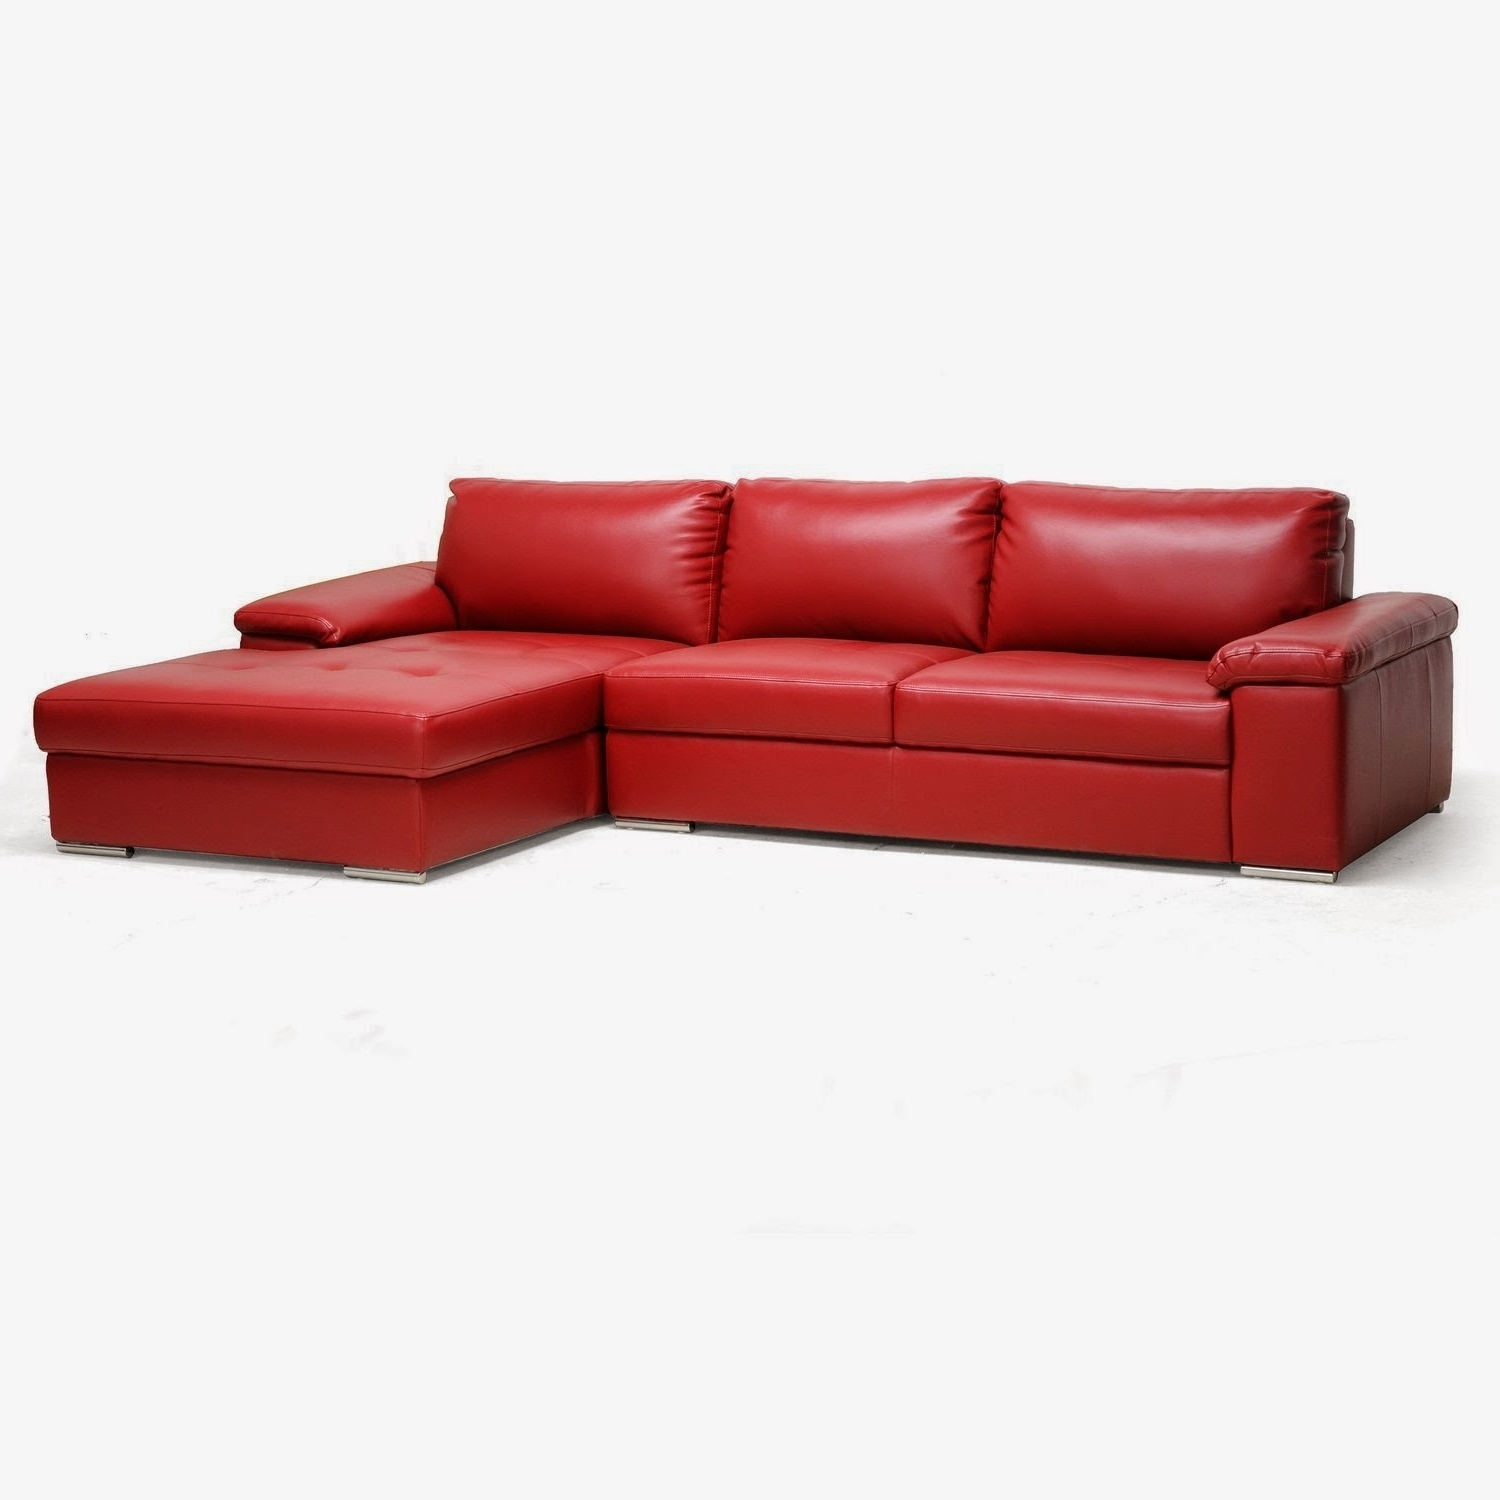 Widely Used Furniture: Modern L Shaped Red Leather Couches For Cool Living  With Red Leather